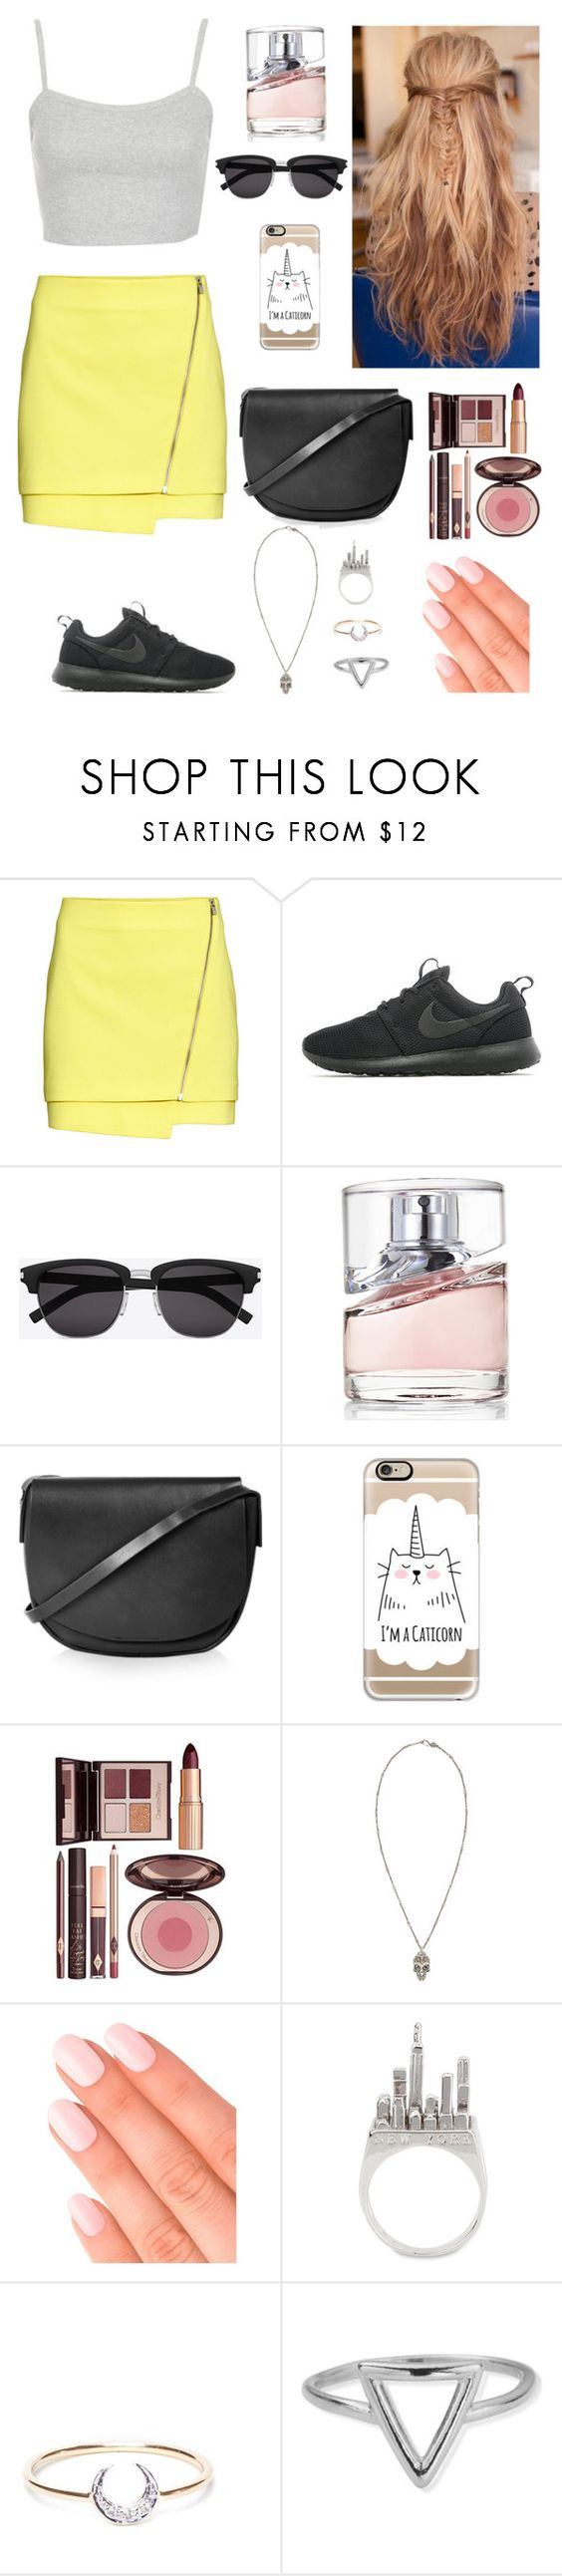 """Untitled #338"" by e-ema ❤ liked on Polyvore featuring H&M, Topshop, NIKE, Yves Saint Laurent, BOSS Hugo Boss, Casetify, Charlotte Tilbury, Alexander McQueen, Elegant Touch and Anello"